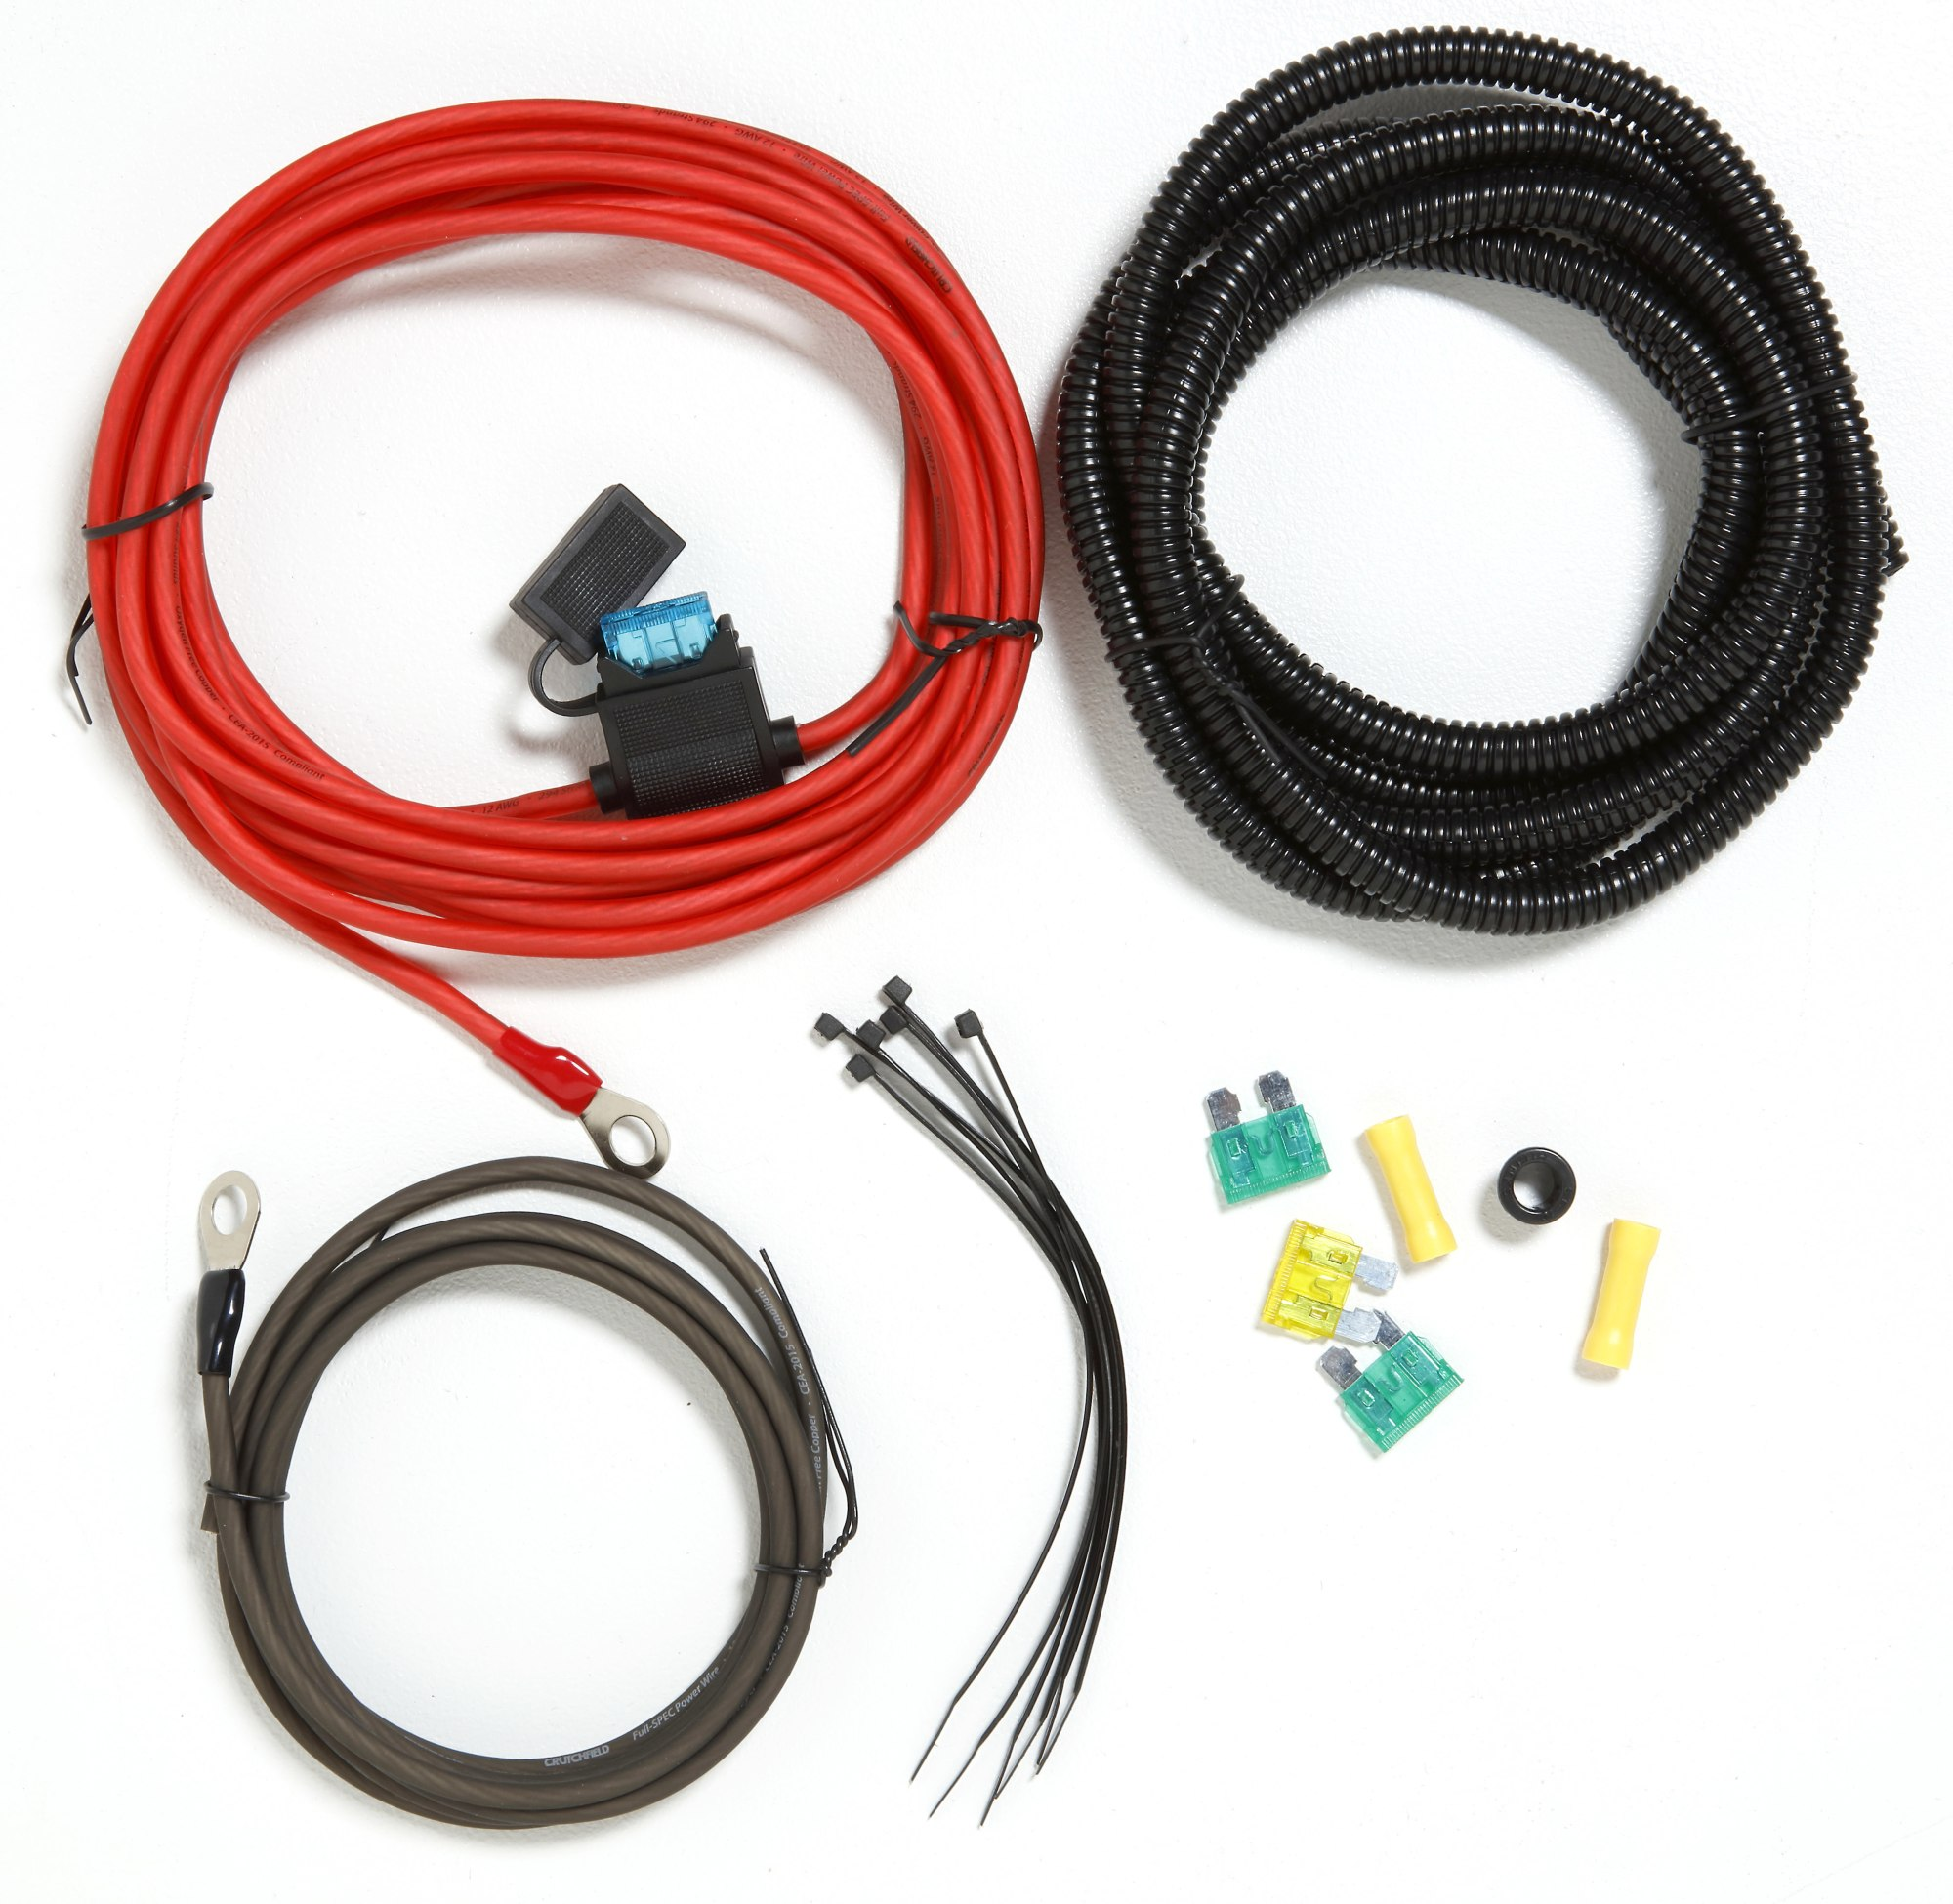 hight resolution of crutchfield ck12 12 gauge wiring kit for small compact amps and high power car stereos at crutchfield